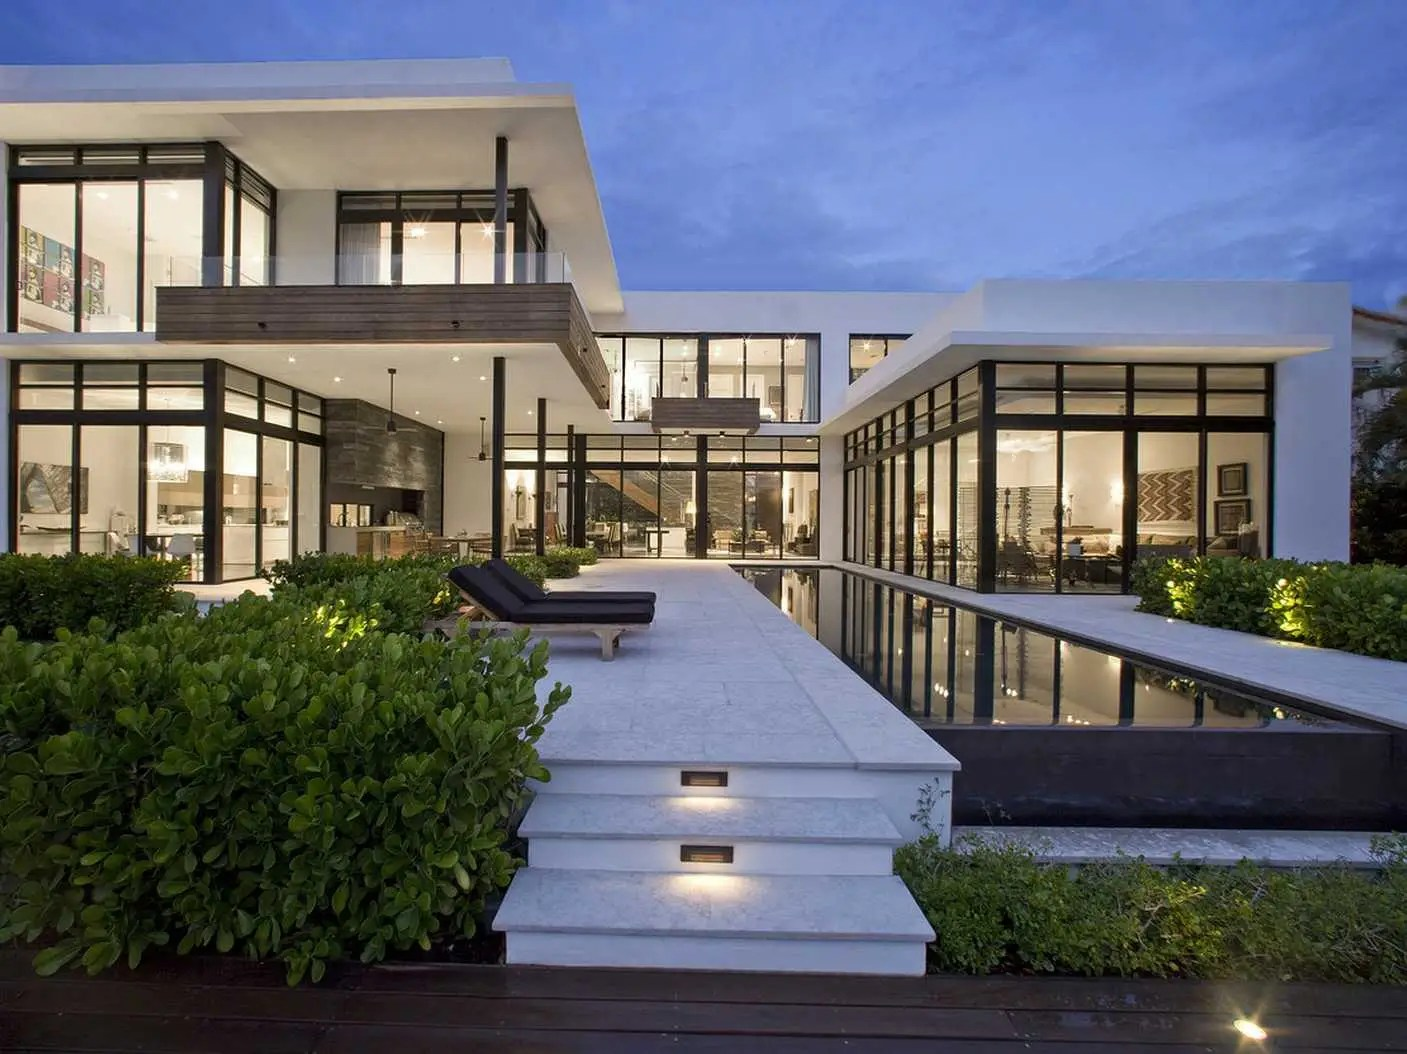 The home sits on approximately 100 feet of water frontage in the town of Golden Beach, Florida. Originally listed for $12 million, Mrs. Franco decided to raise the price this month to just under $13 million due to the strengthening local market, reports WSJ.